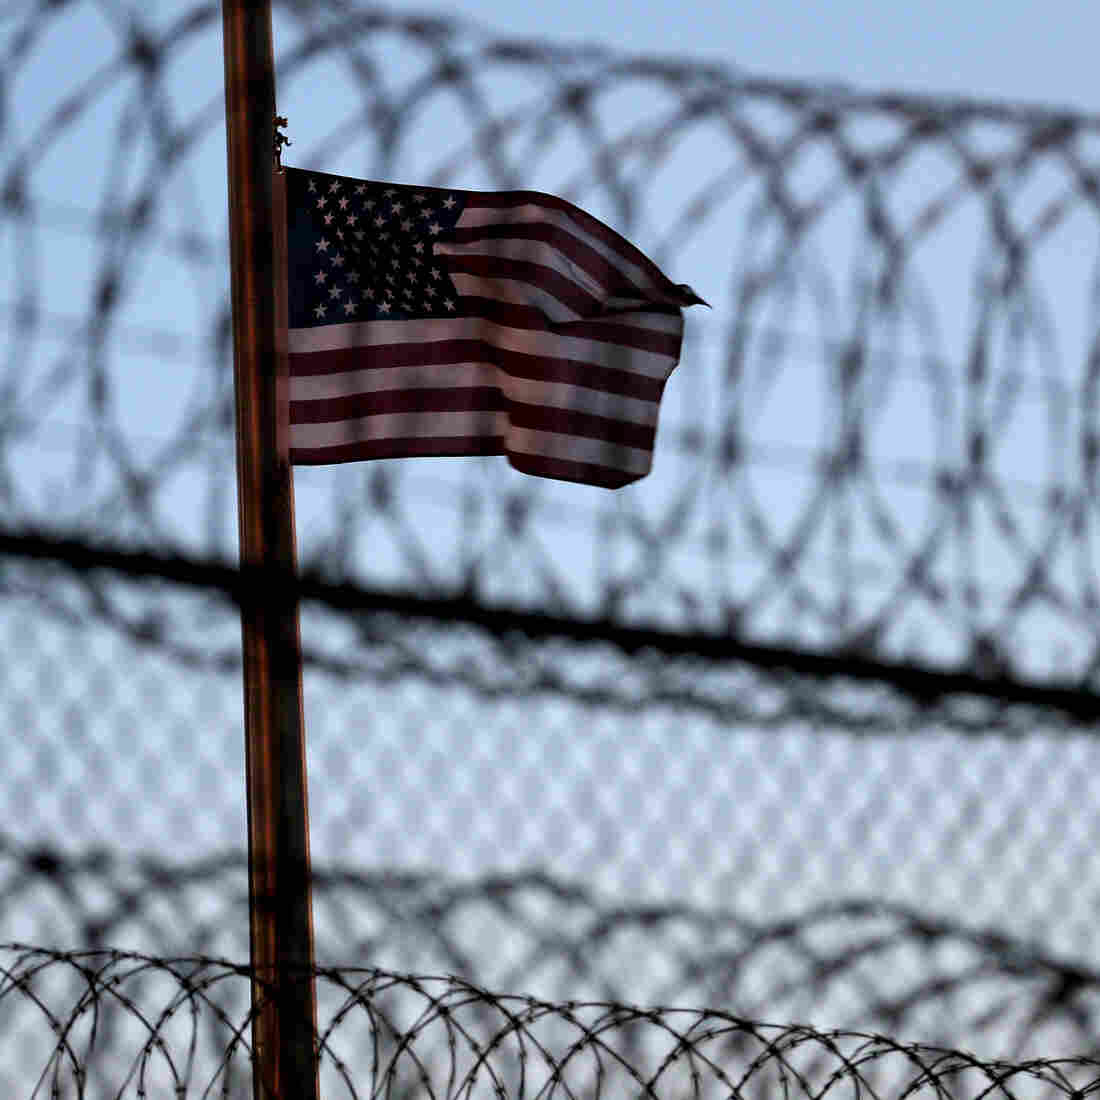 Families Of Sept. 11 Victims Watch Guantanamo Hearings With Mixed Feelings